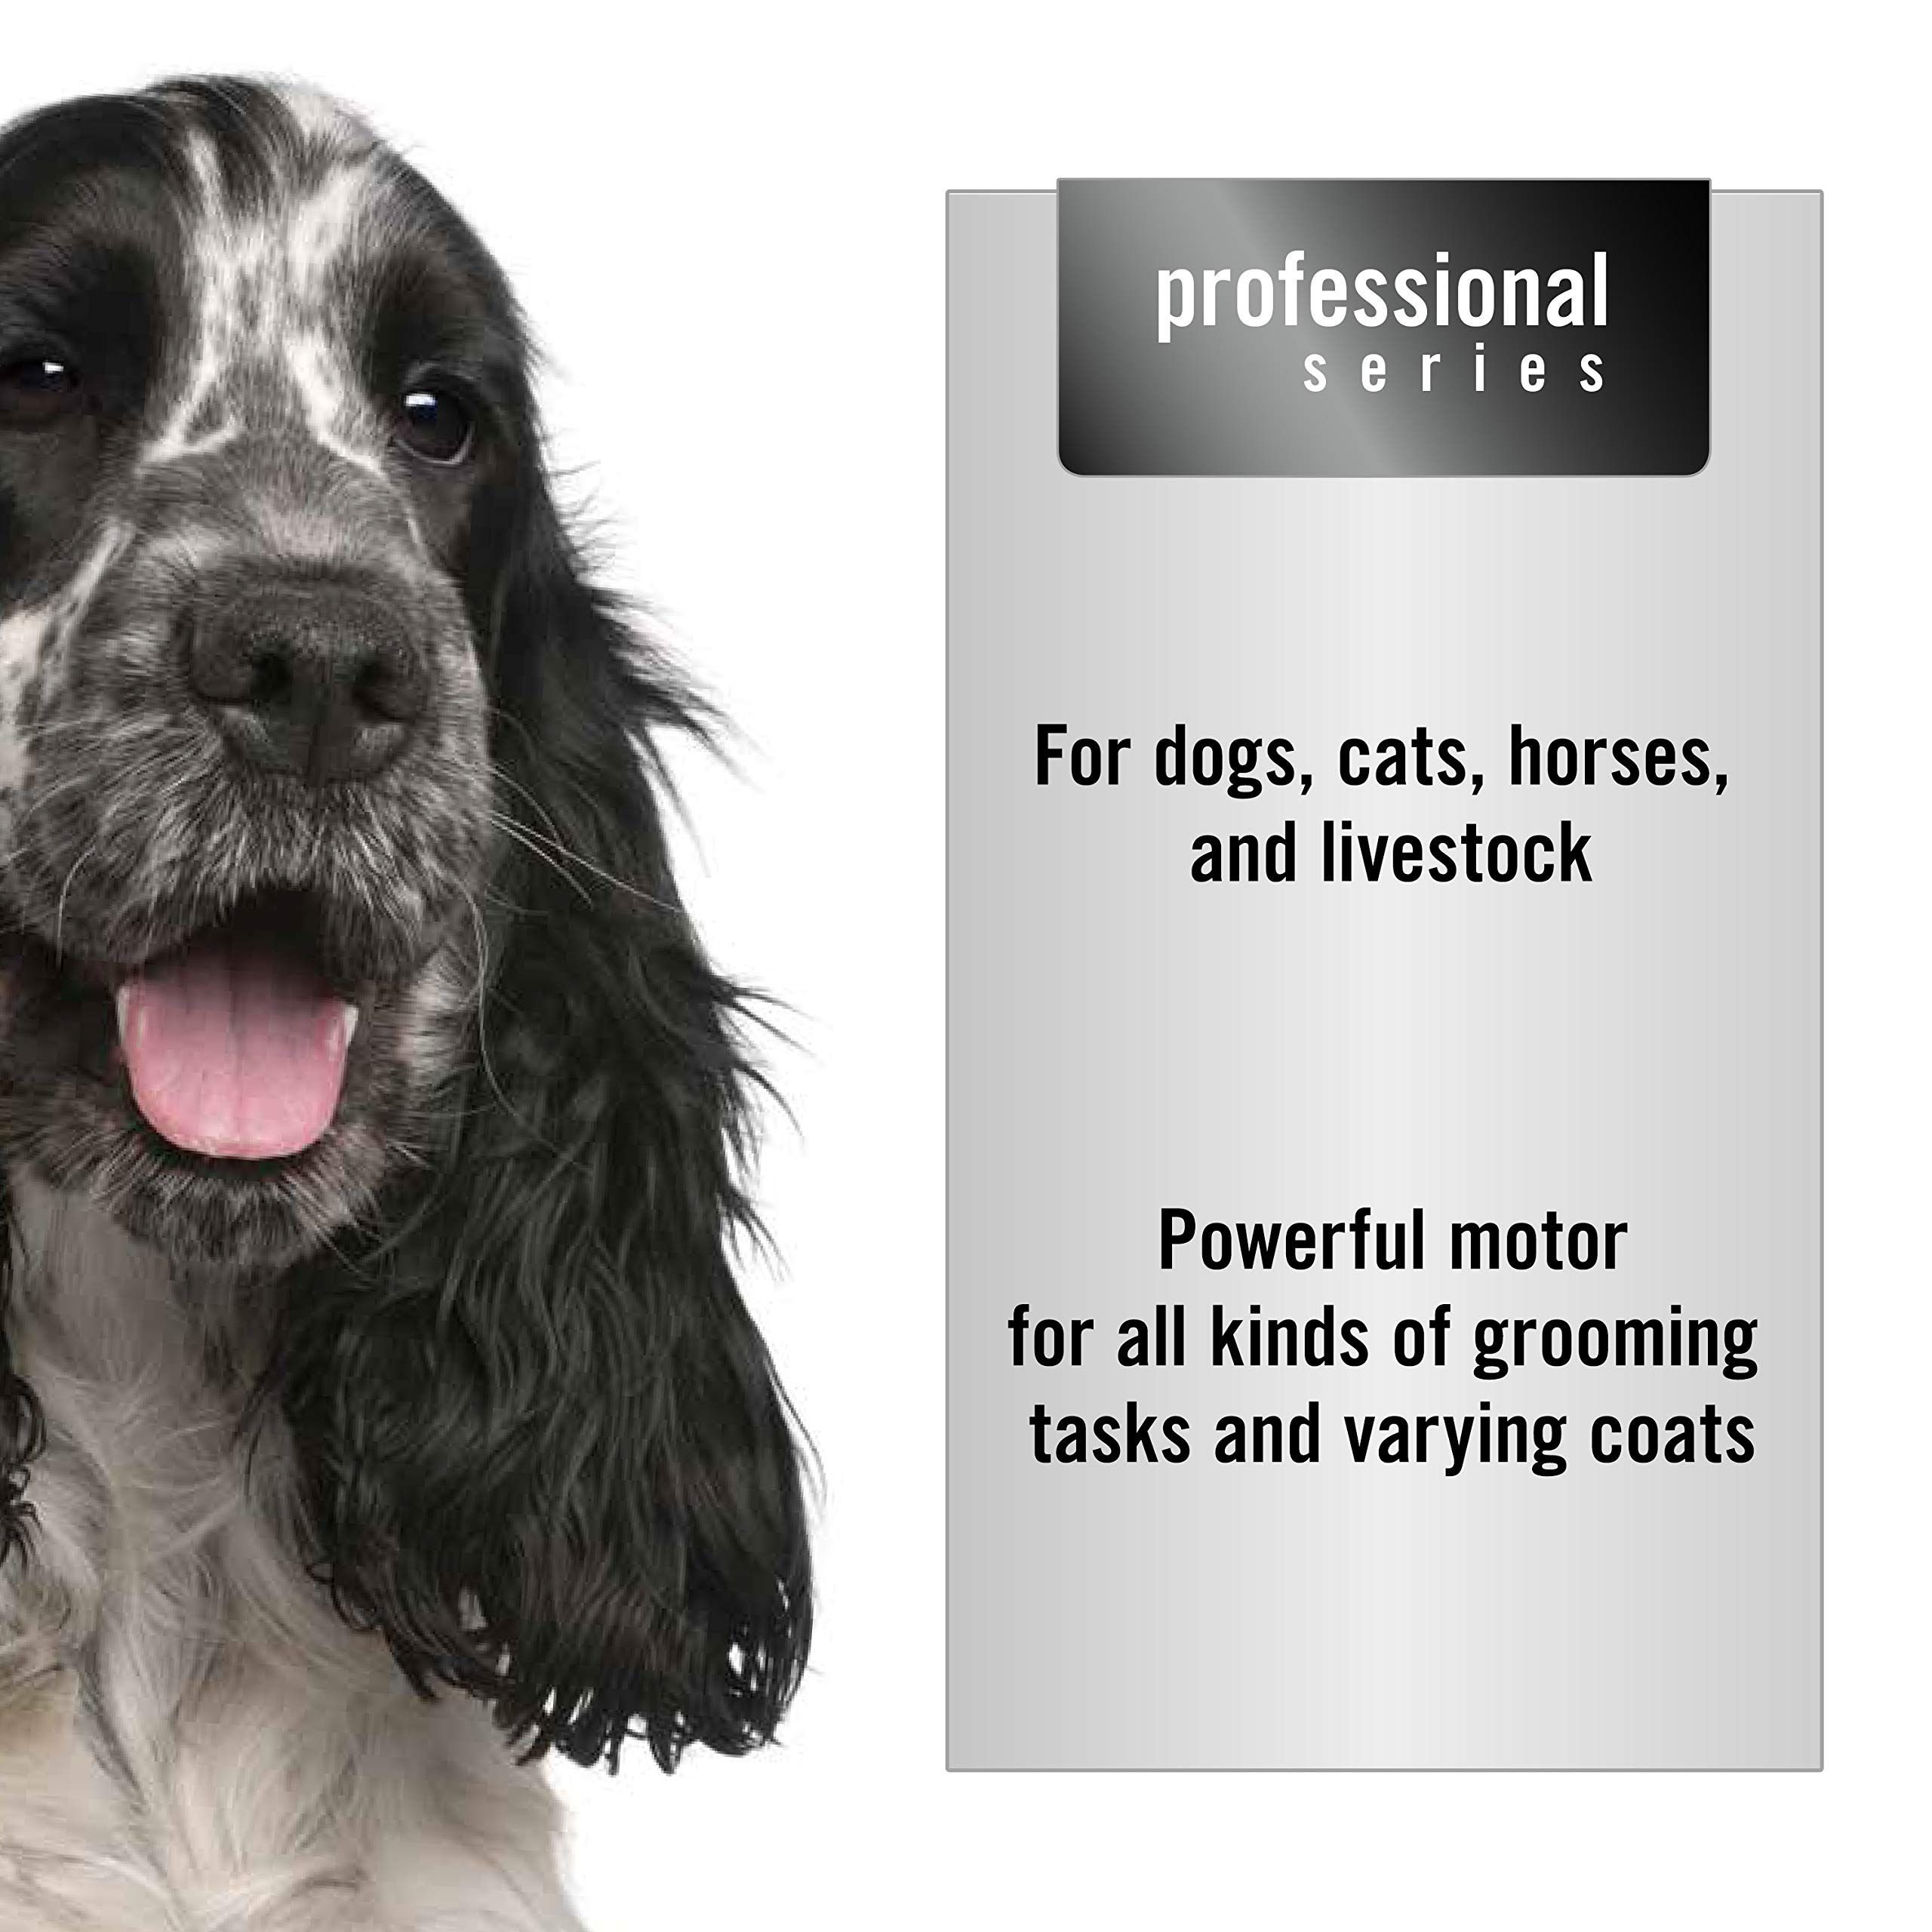 Oster Pet Clippers A5 2speed Animal Grooming Clipper With Detachable Cyogenx Blade Want To Know More Click On Grooming Dog Grooming Dog Grooming Supplies